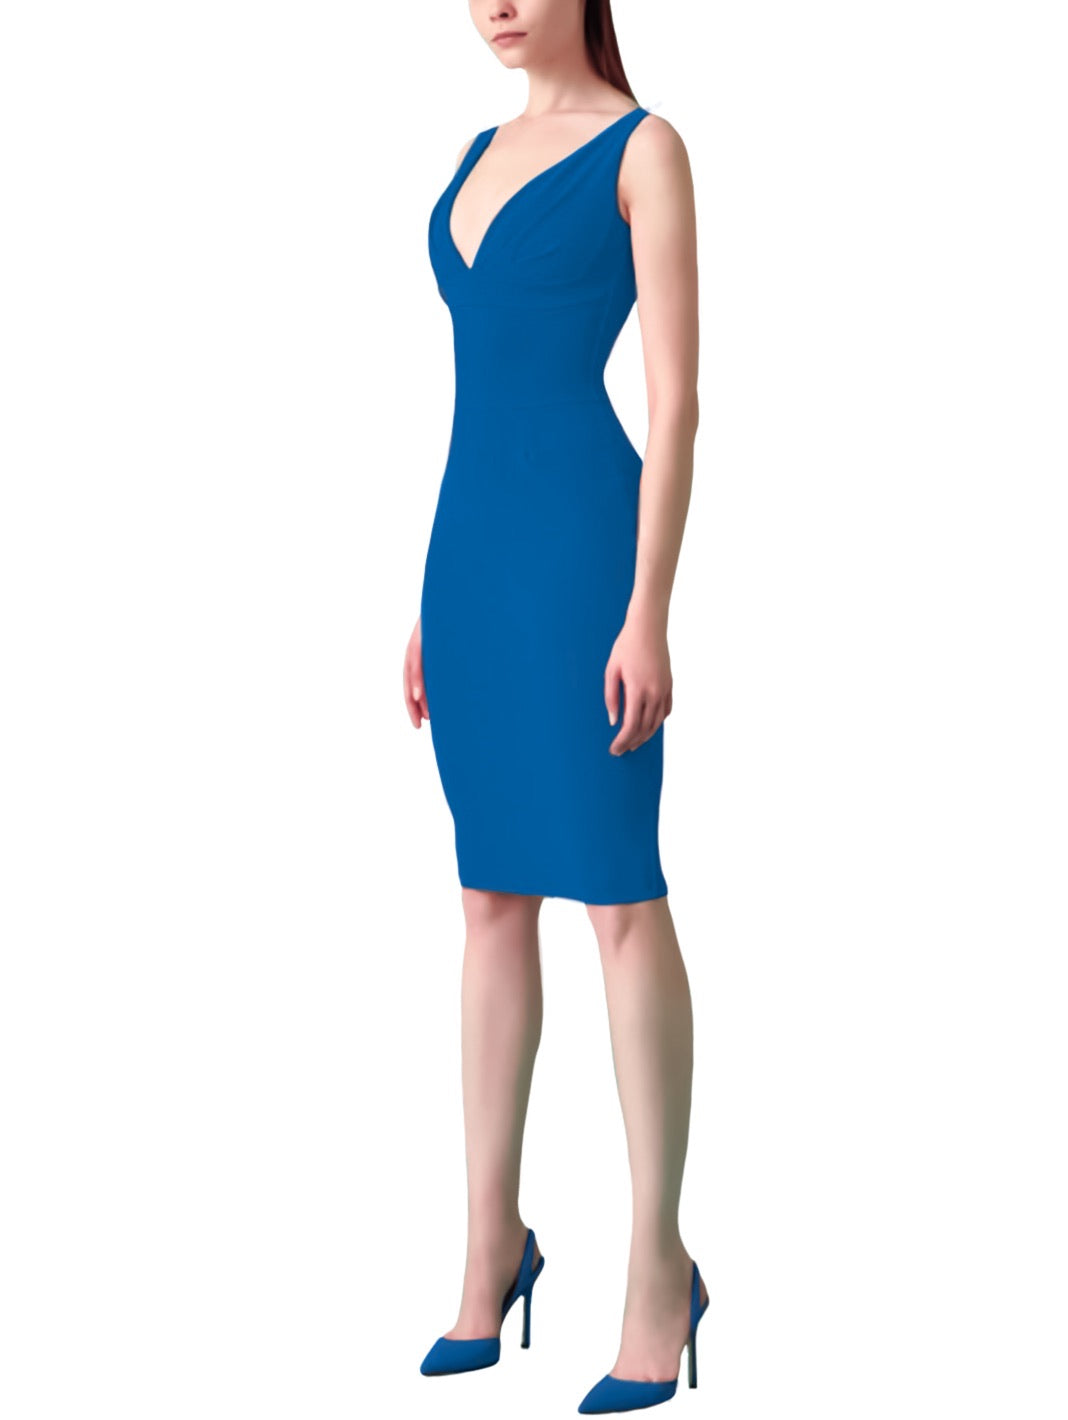 Rory Sleeveless Fitted Dress - The Bobby Boga